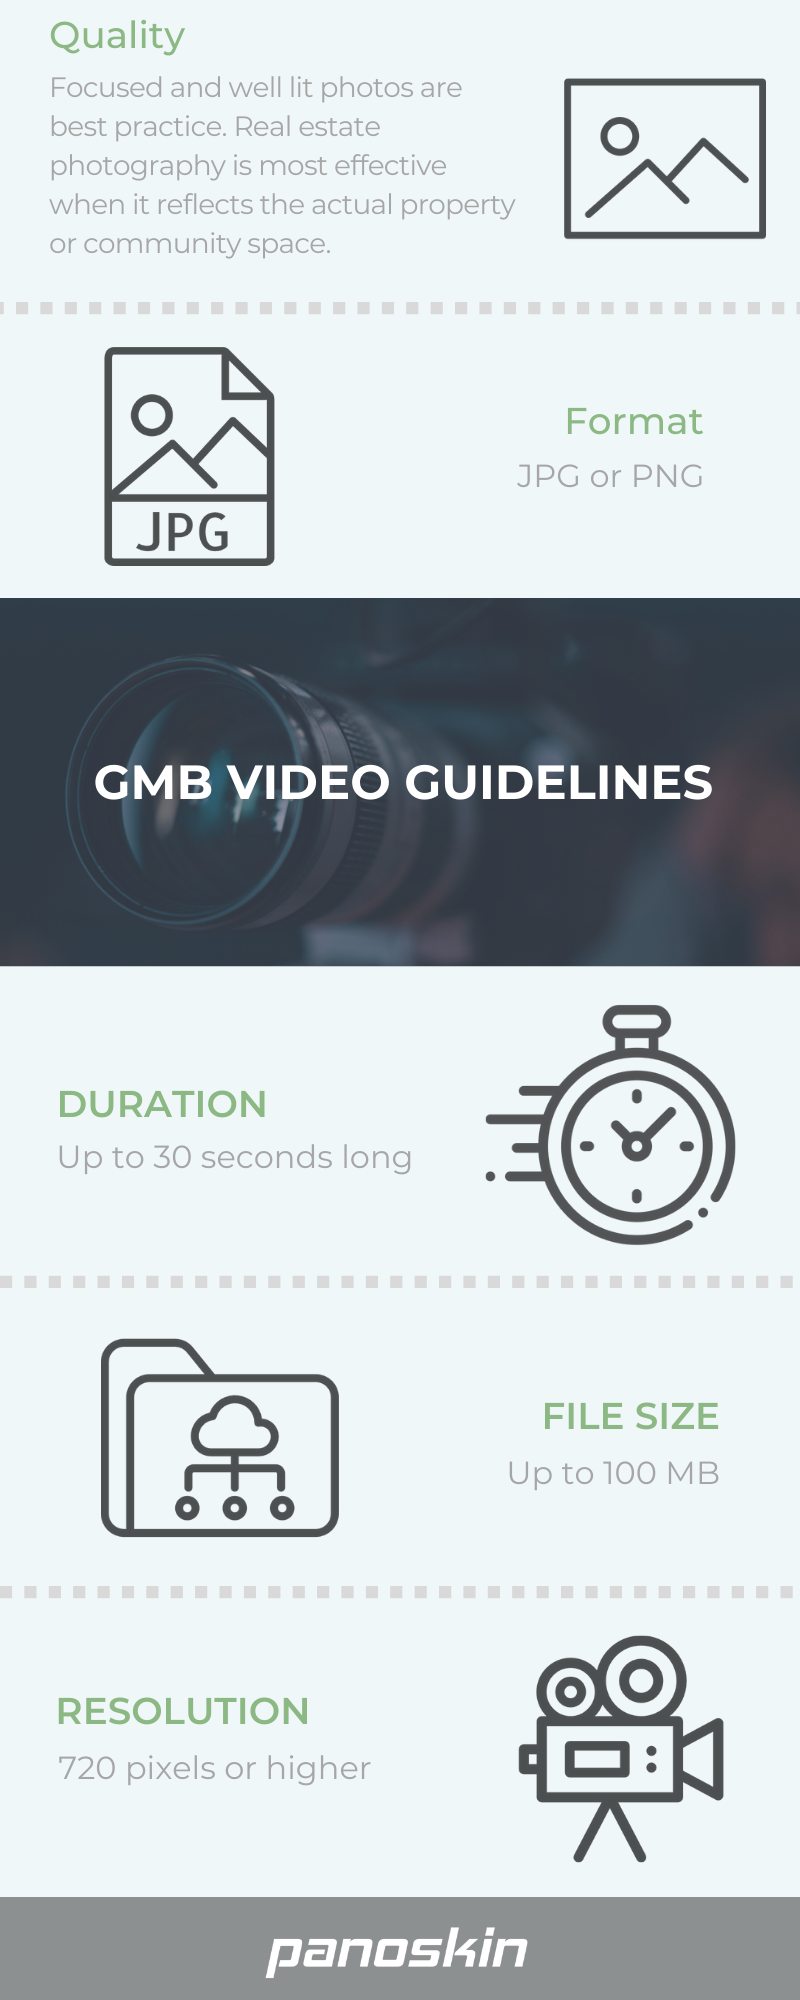 Copy of 2020 GMB Listing Photo Requirements (1)